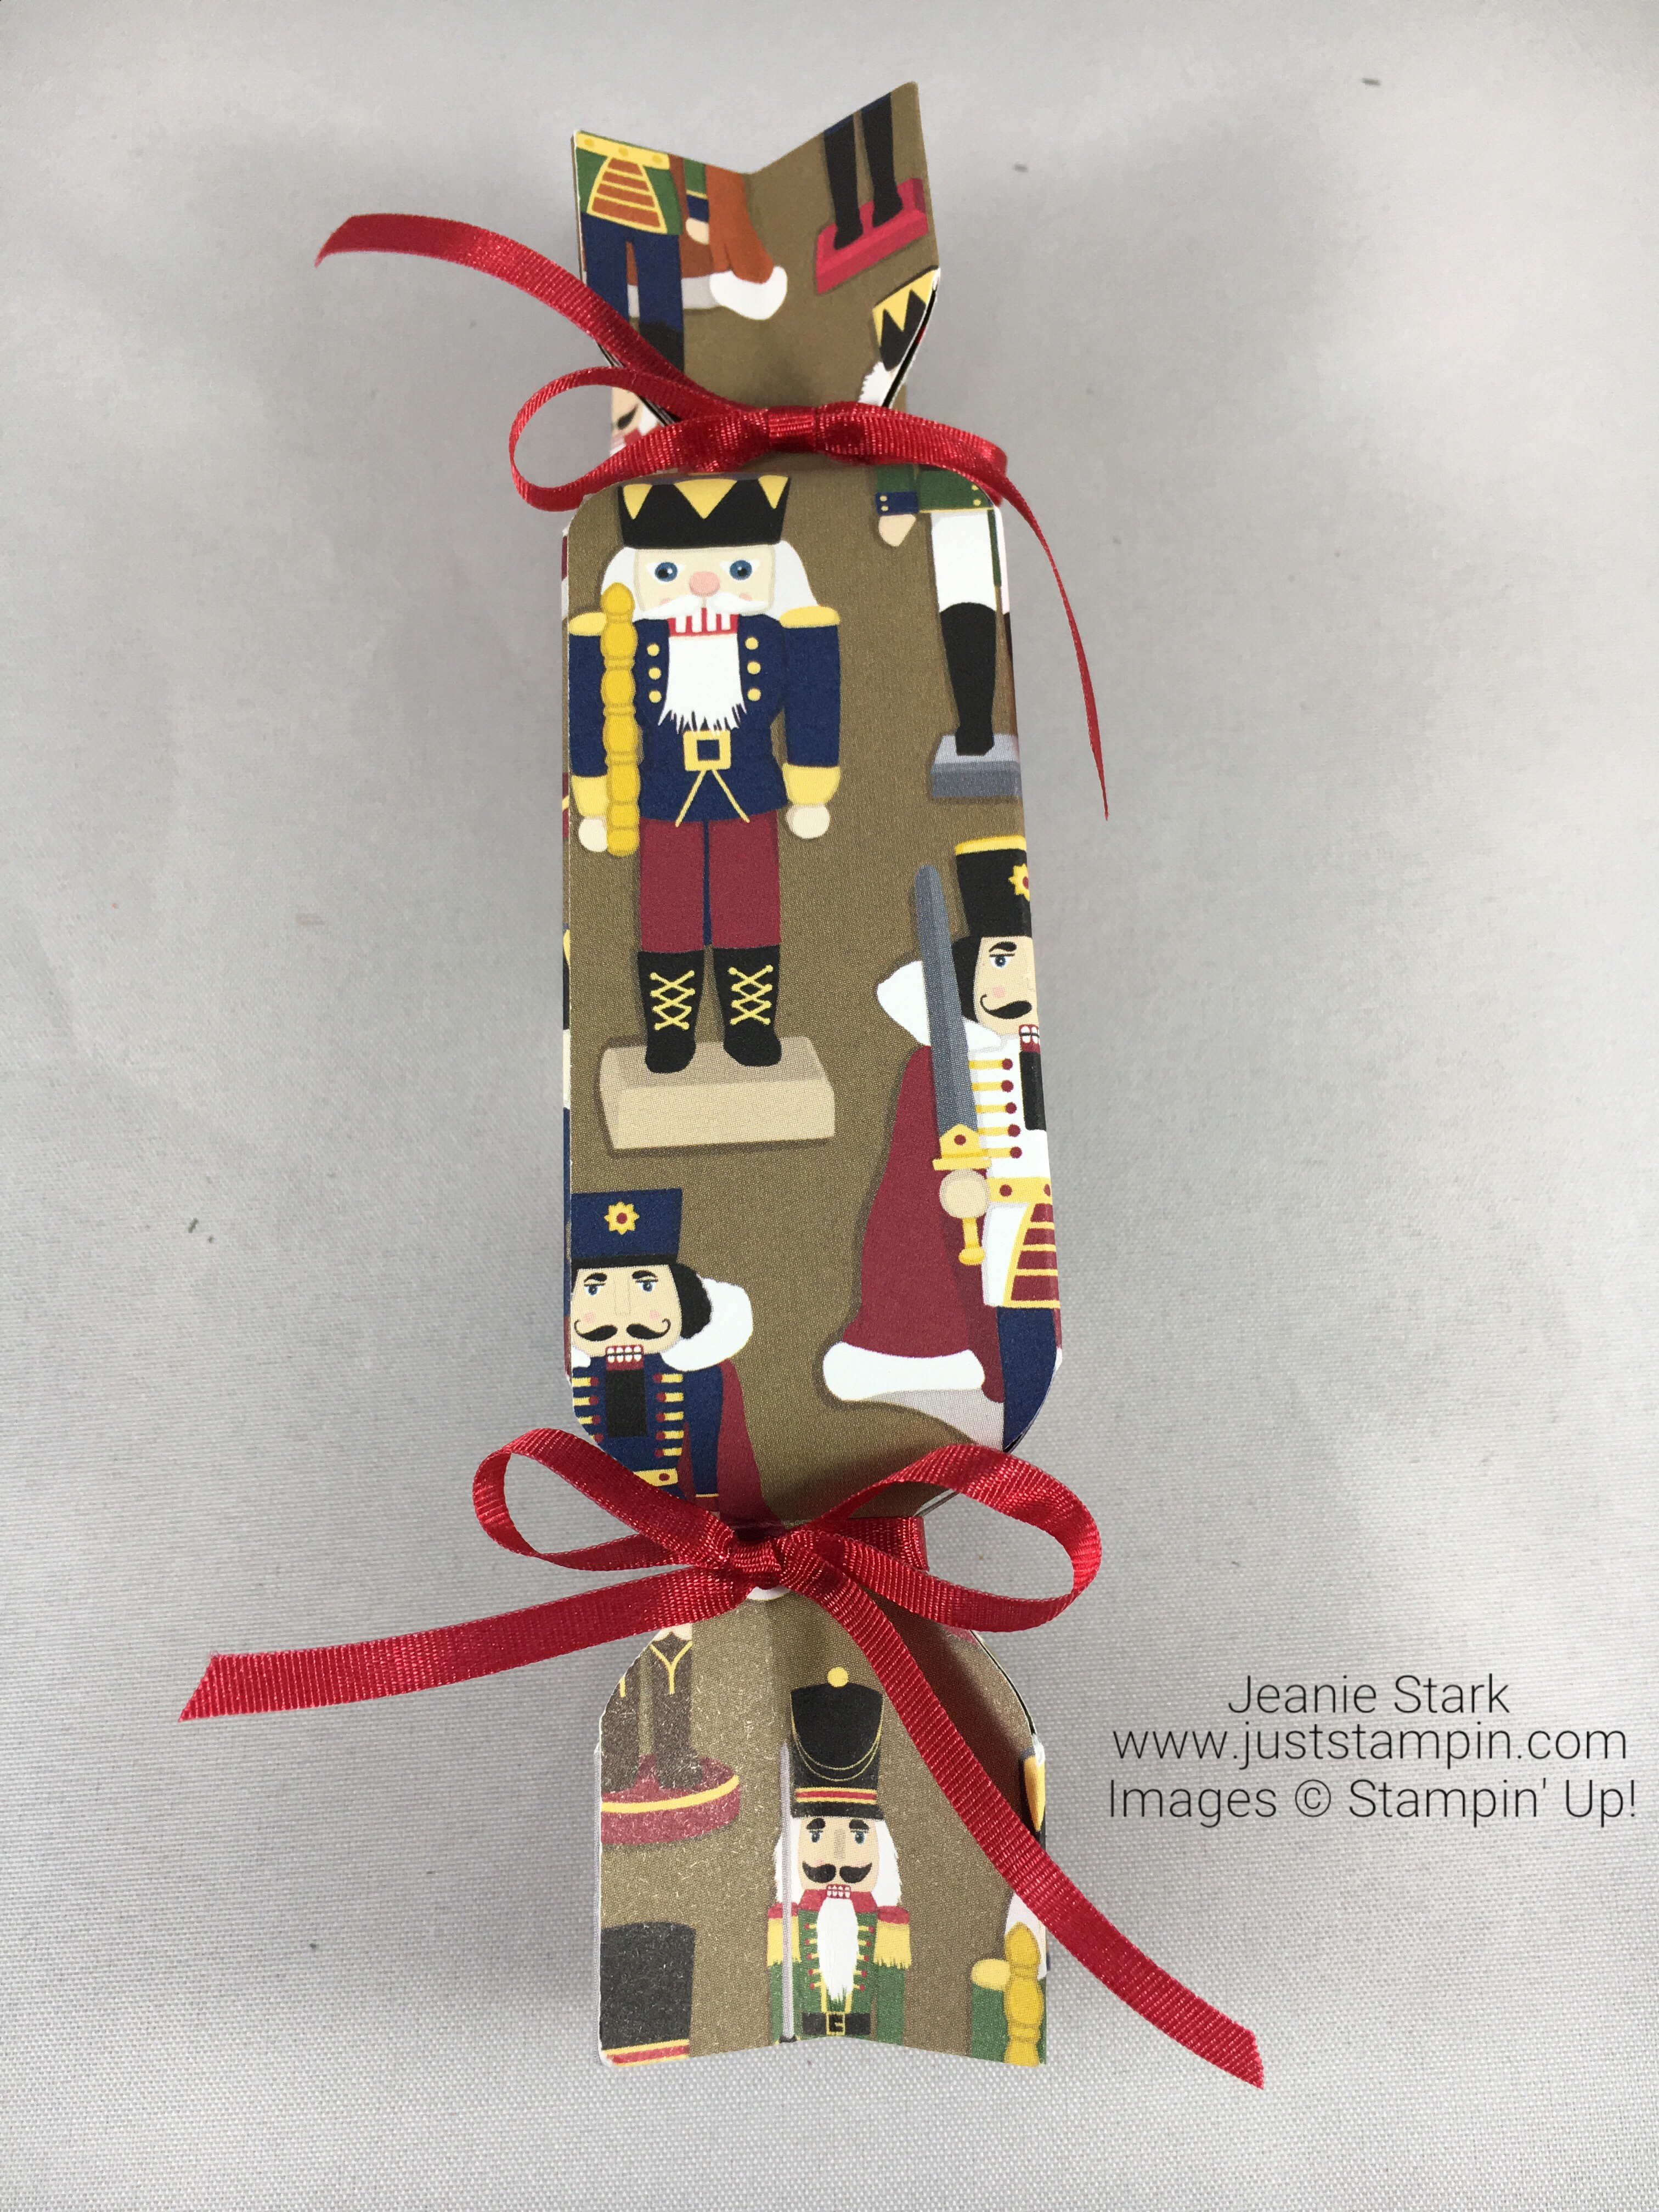 Stampin Up Christmas Around the World cracker box made with the Envelope Punch Board - Jeanie Stark StampinUp